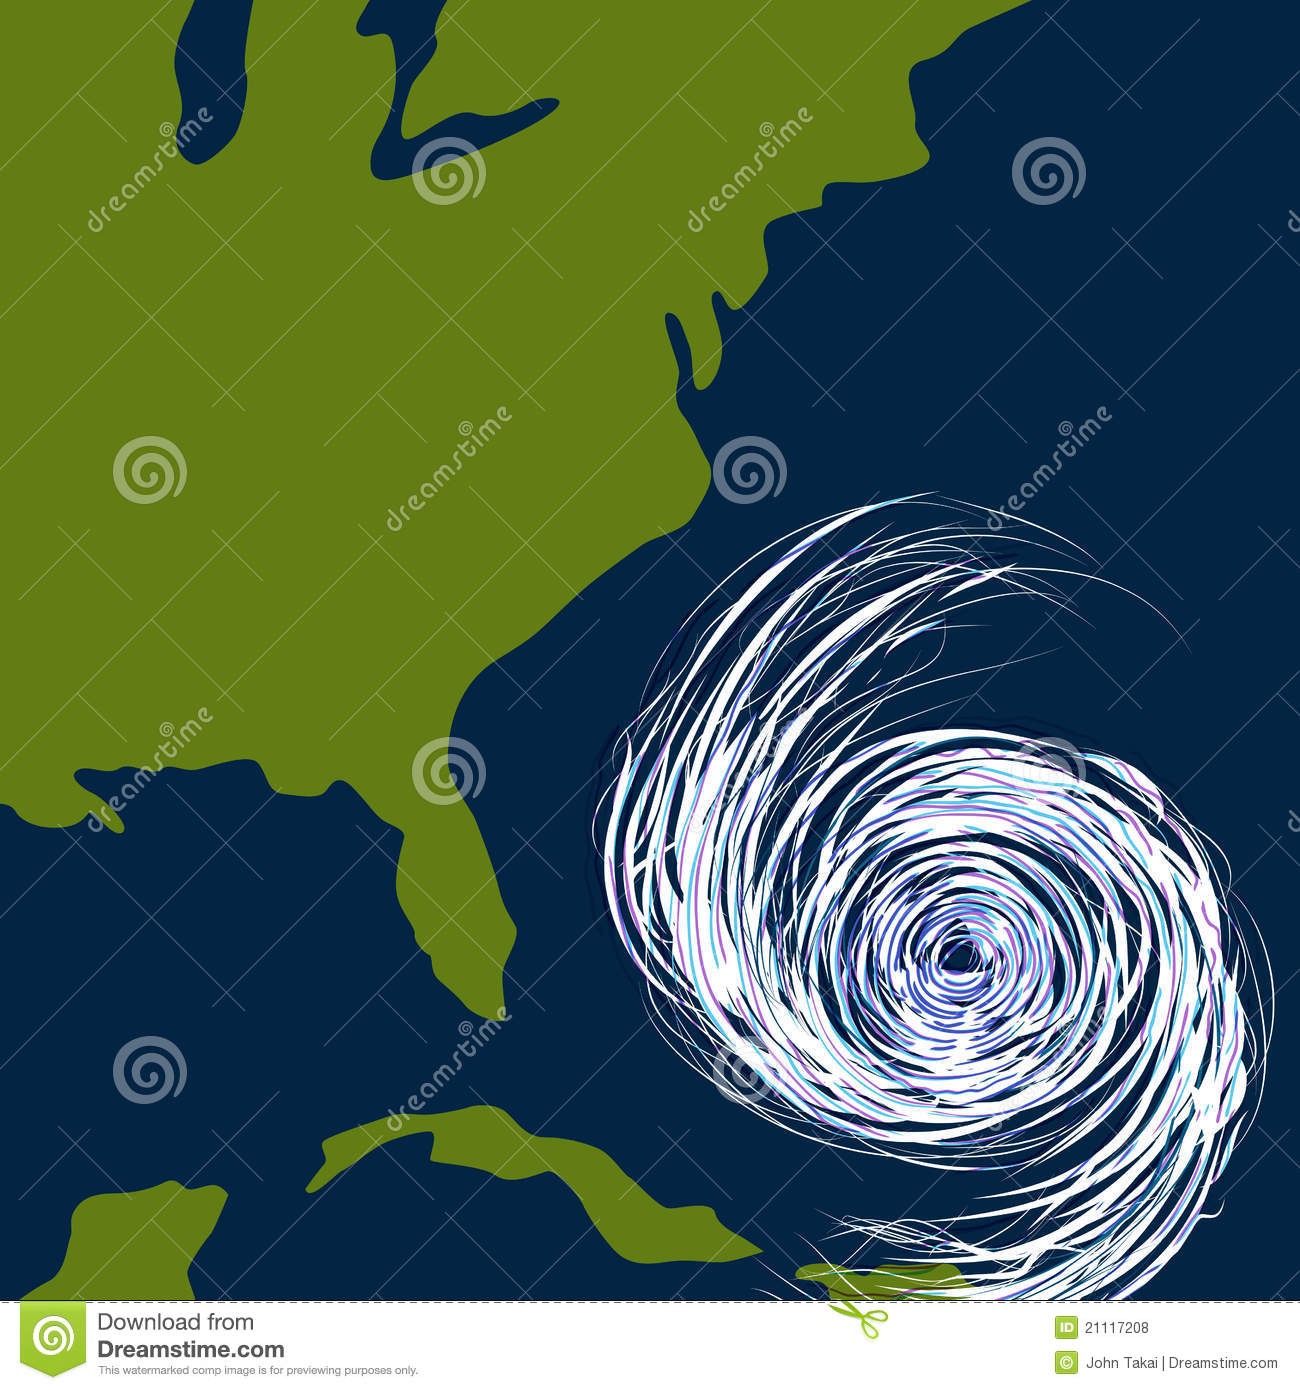 Hurricane clipart #9, Download drawings